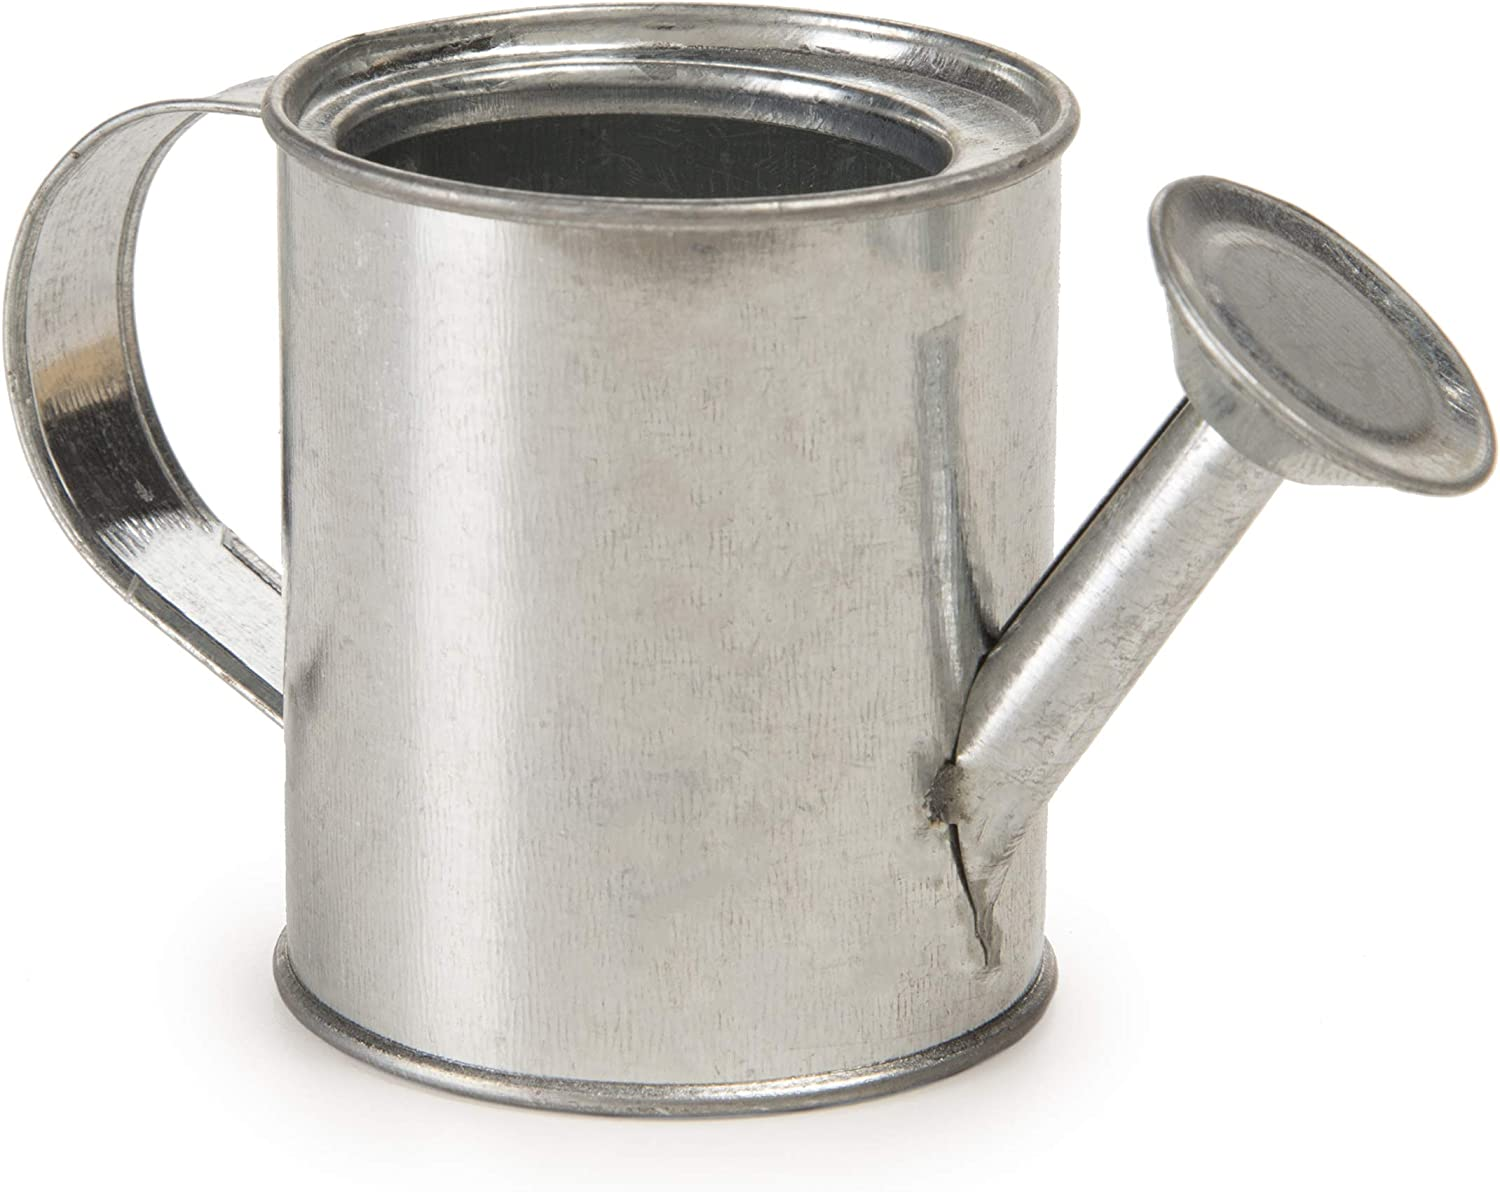 Craft Embellishments Silver Watering Cans x 5